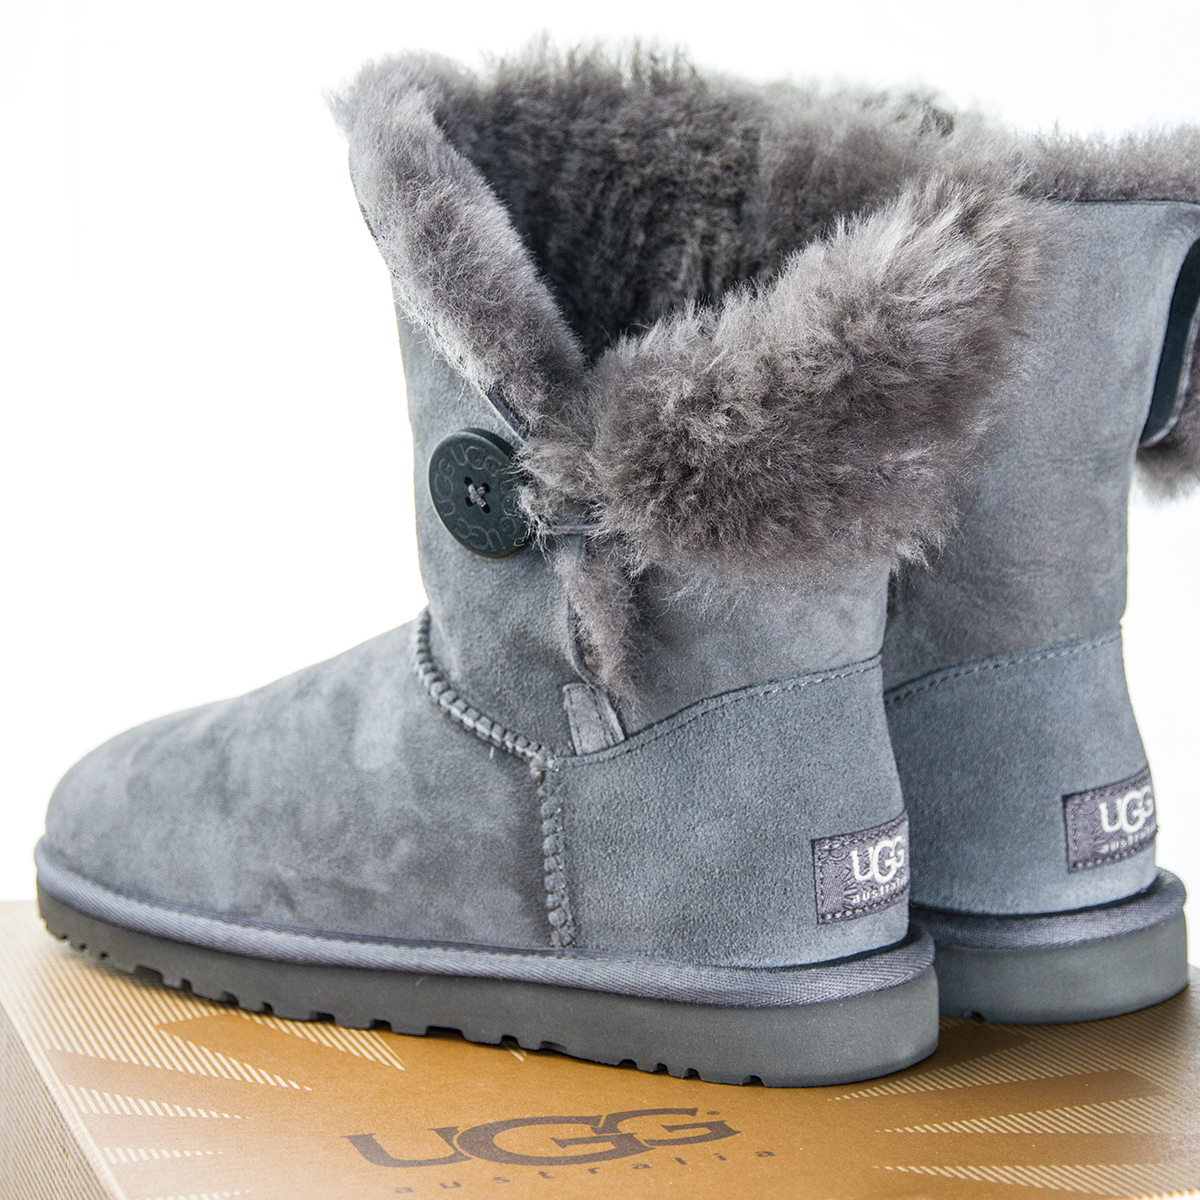 ugg boots 2013 noch in